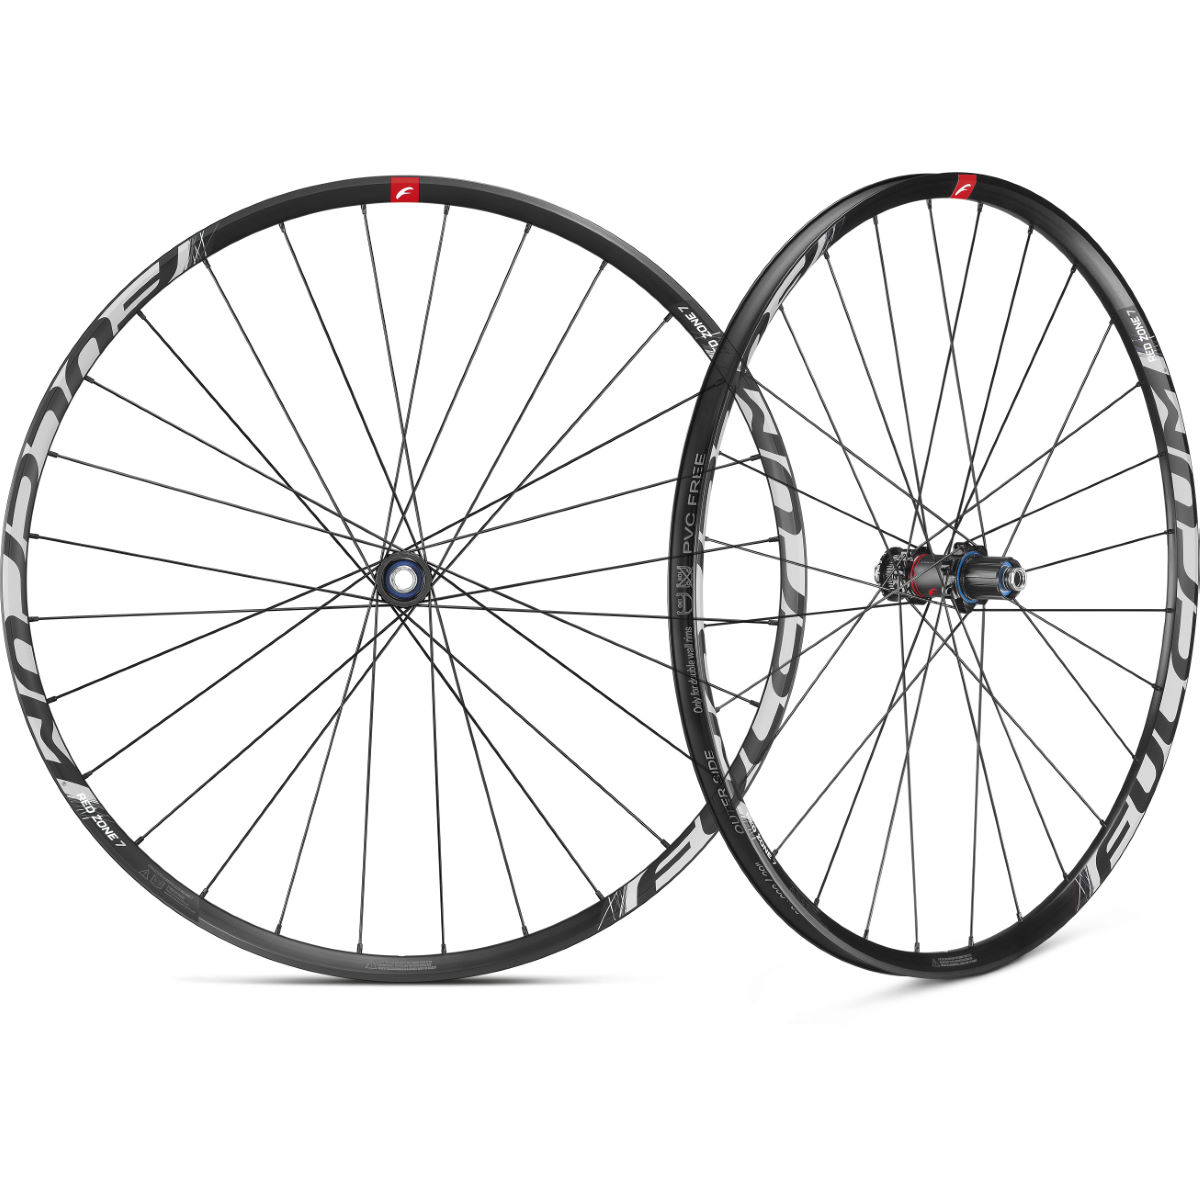 Fulcrum Red Zone 7 Boost MTB Wheelset - Ruedas de competición